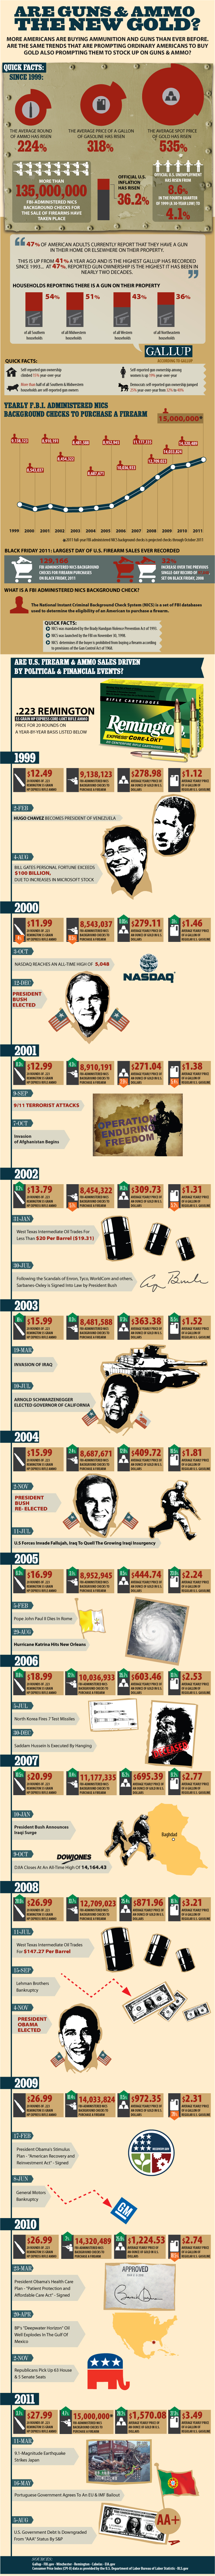 Are-Guns-Ammo-New-Gold-Full-Infographic